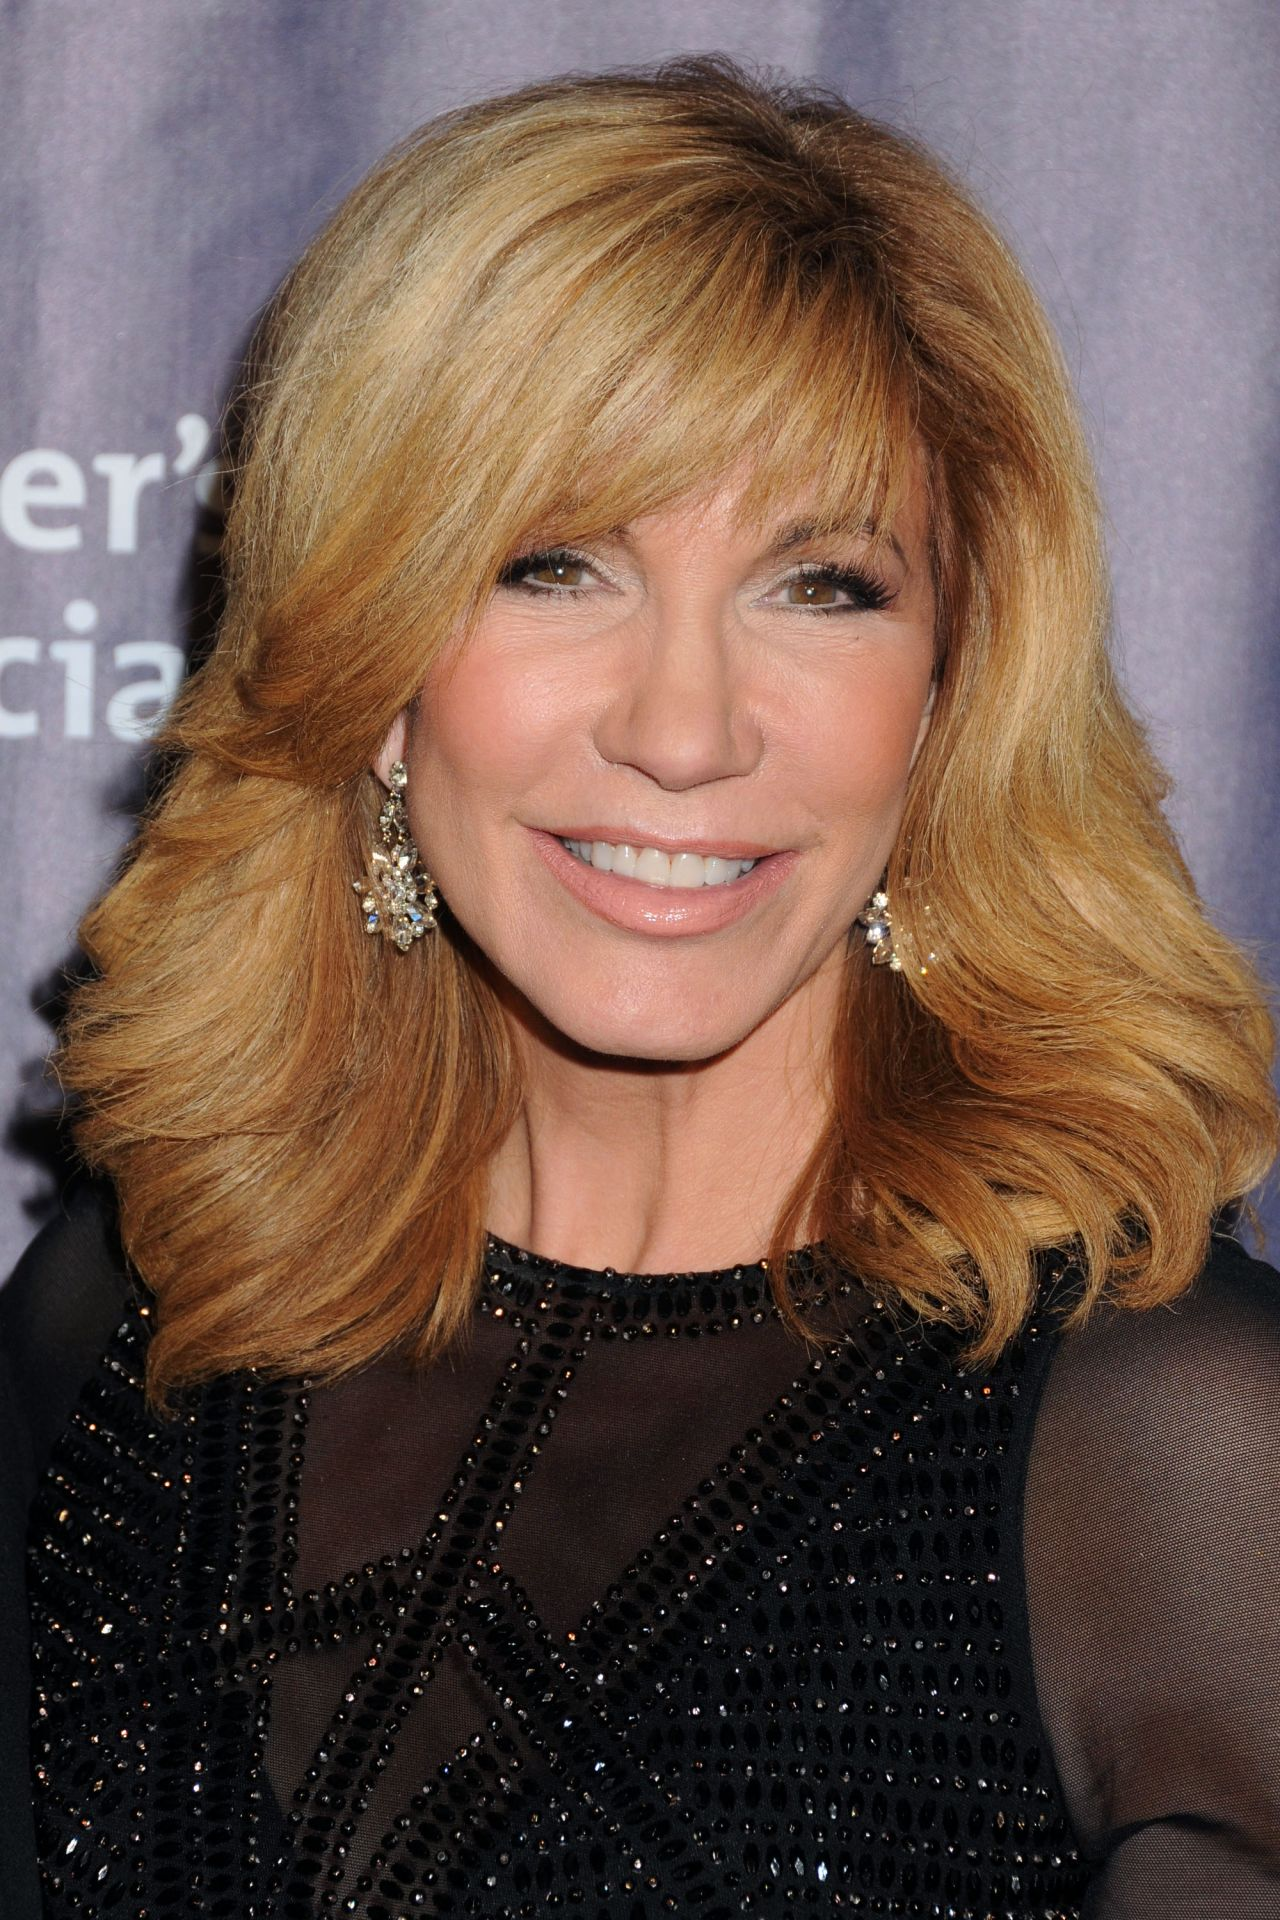 how tall is leeza gibbons